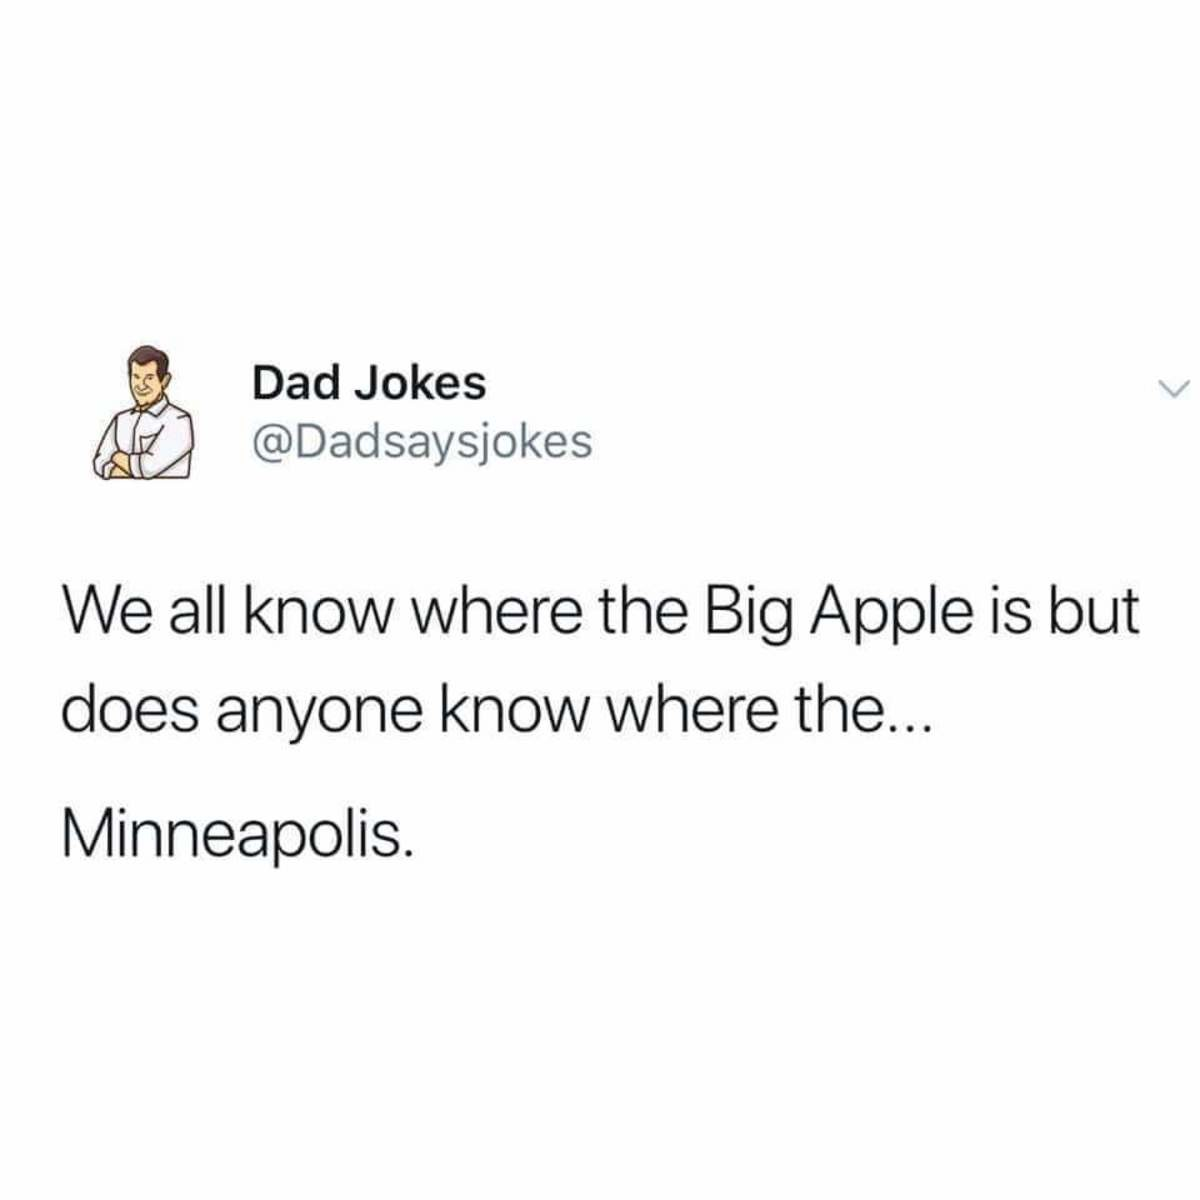 Epic dad joke. .. probably where the MetropolisComment edited at .